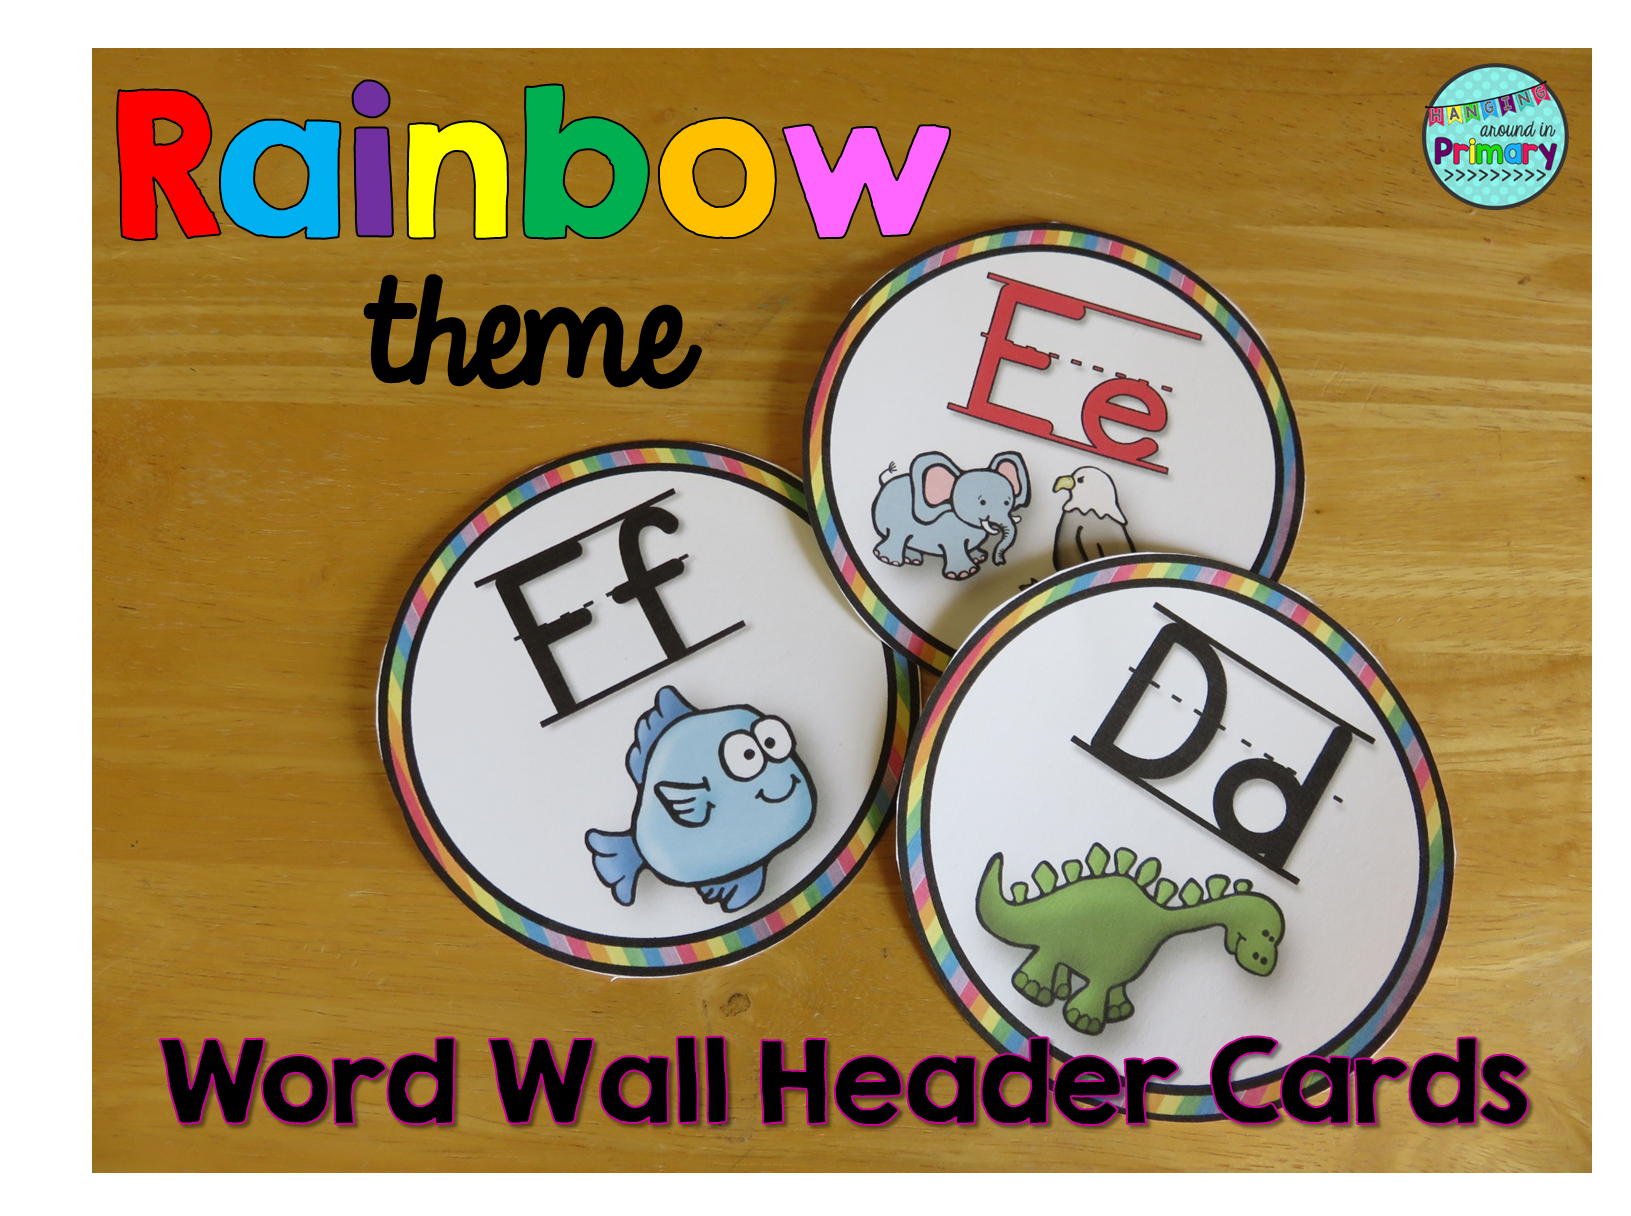 Word Wall Letters Adorable Word Wall Letters  Headers  Rainbow  Word Wall Headers Design Inspiration